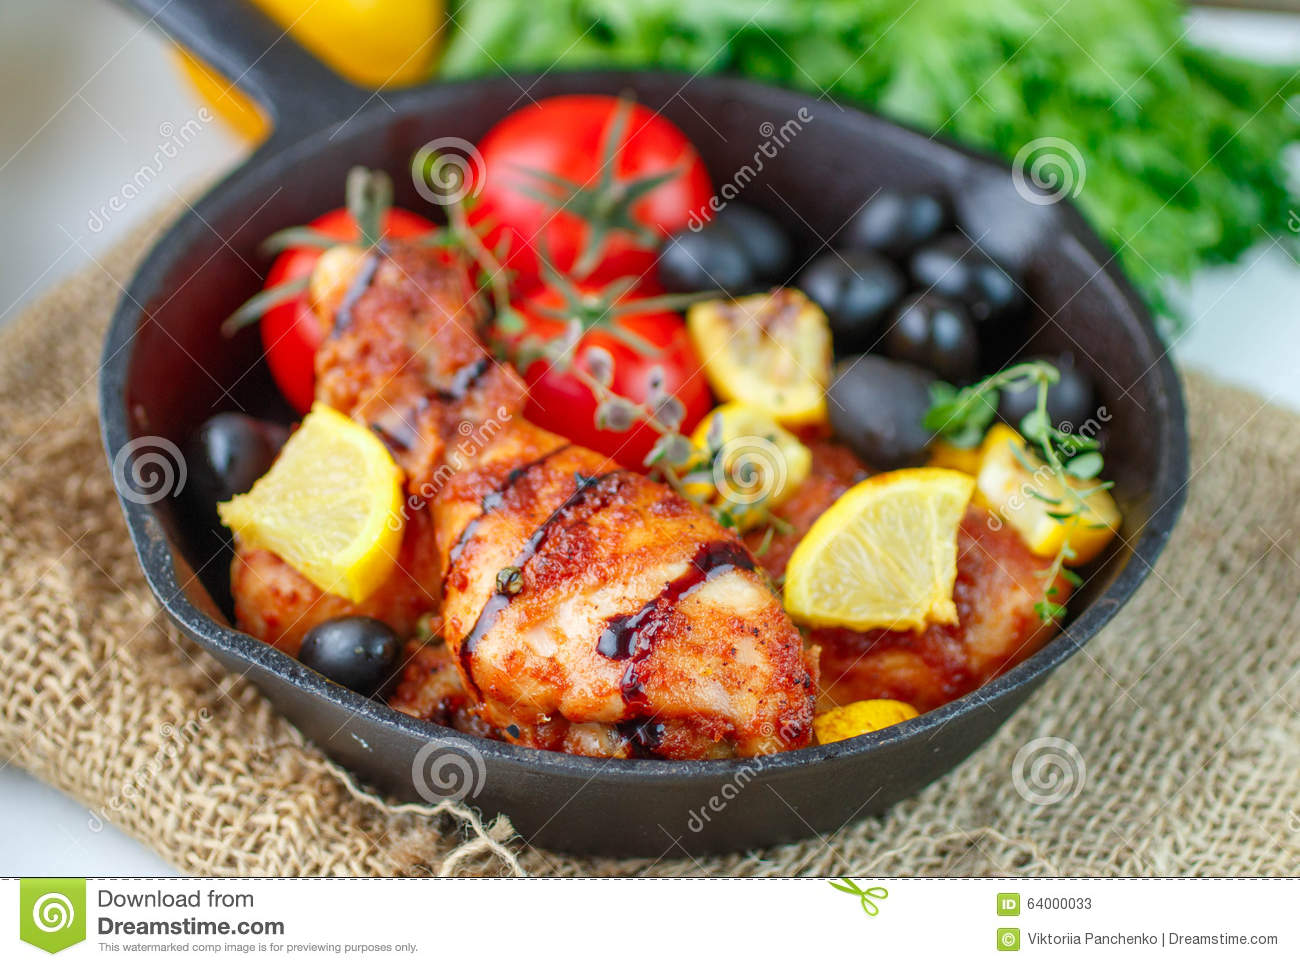 Roast chicken with lemon, olives, tomatoes and thyme. Dinner